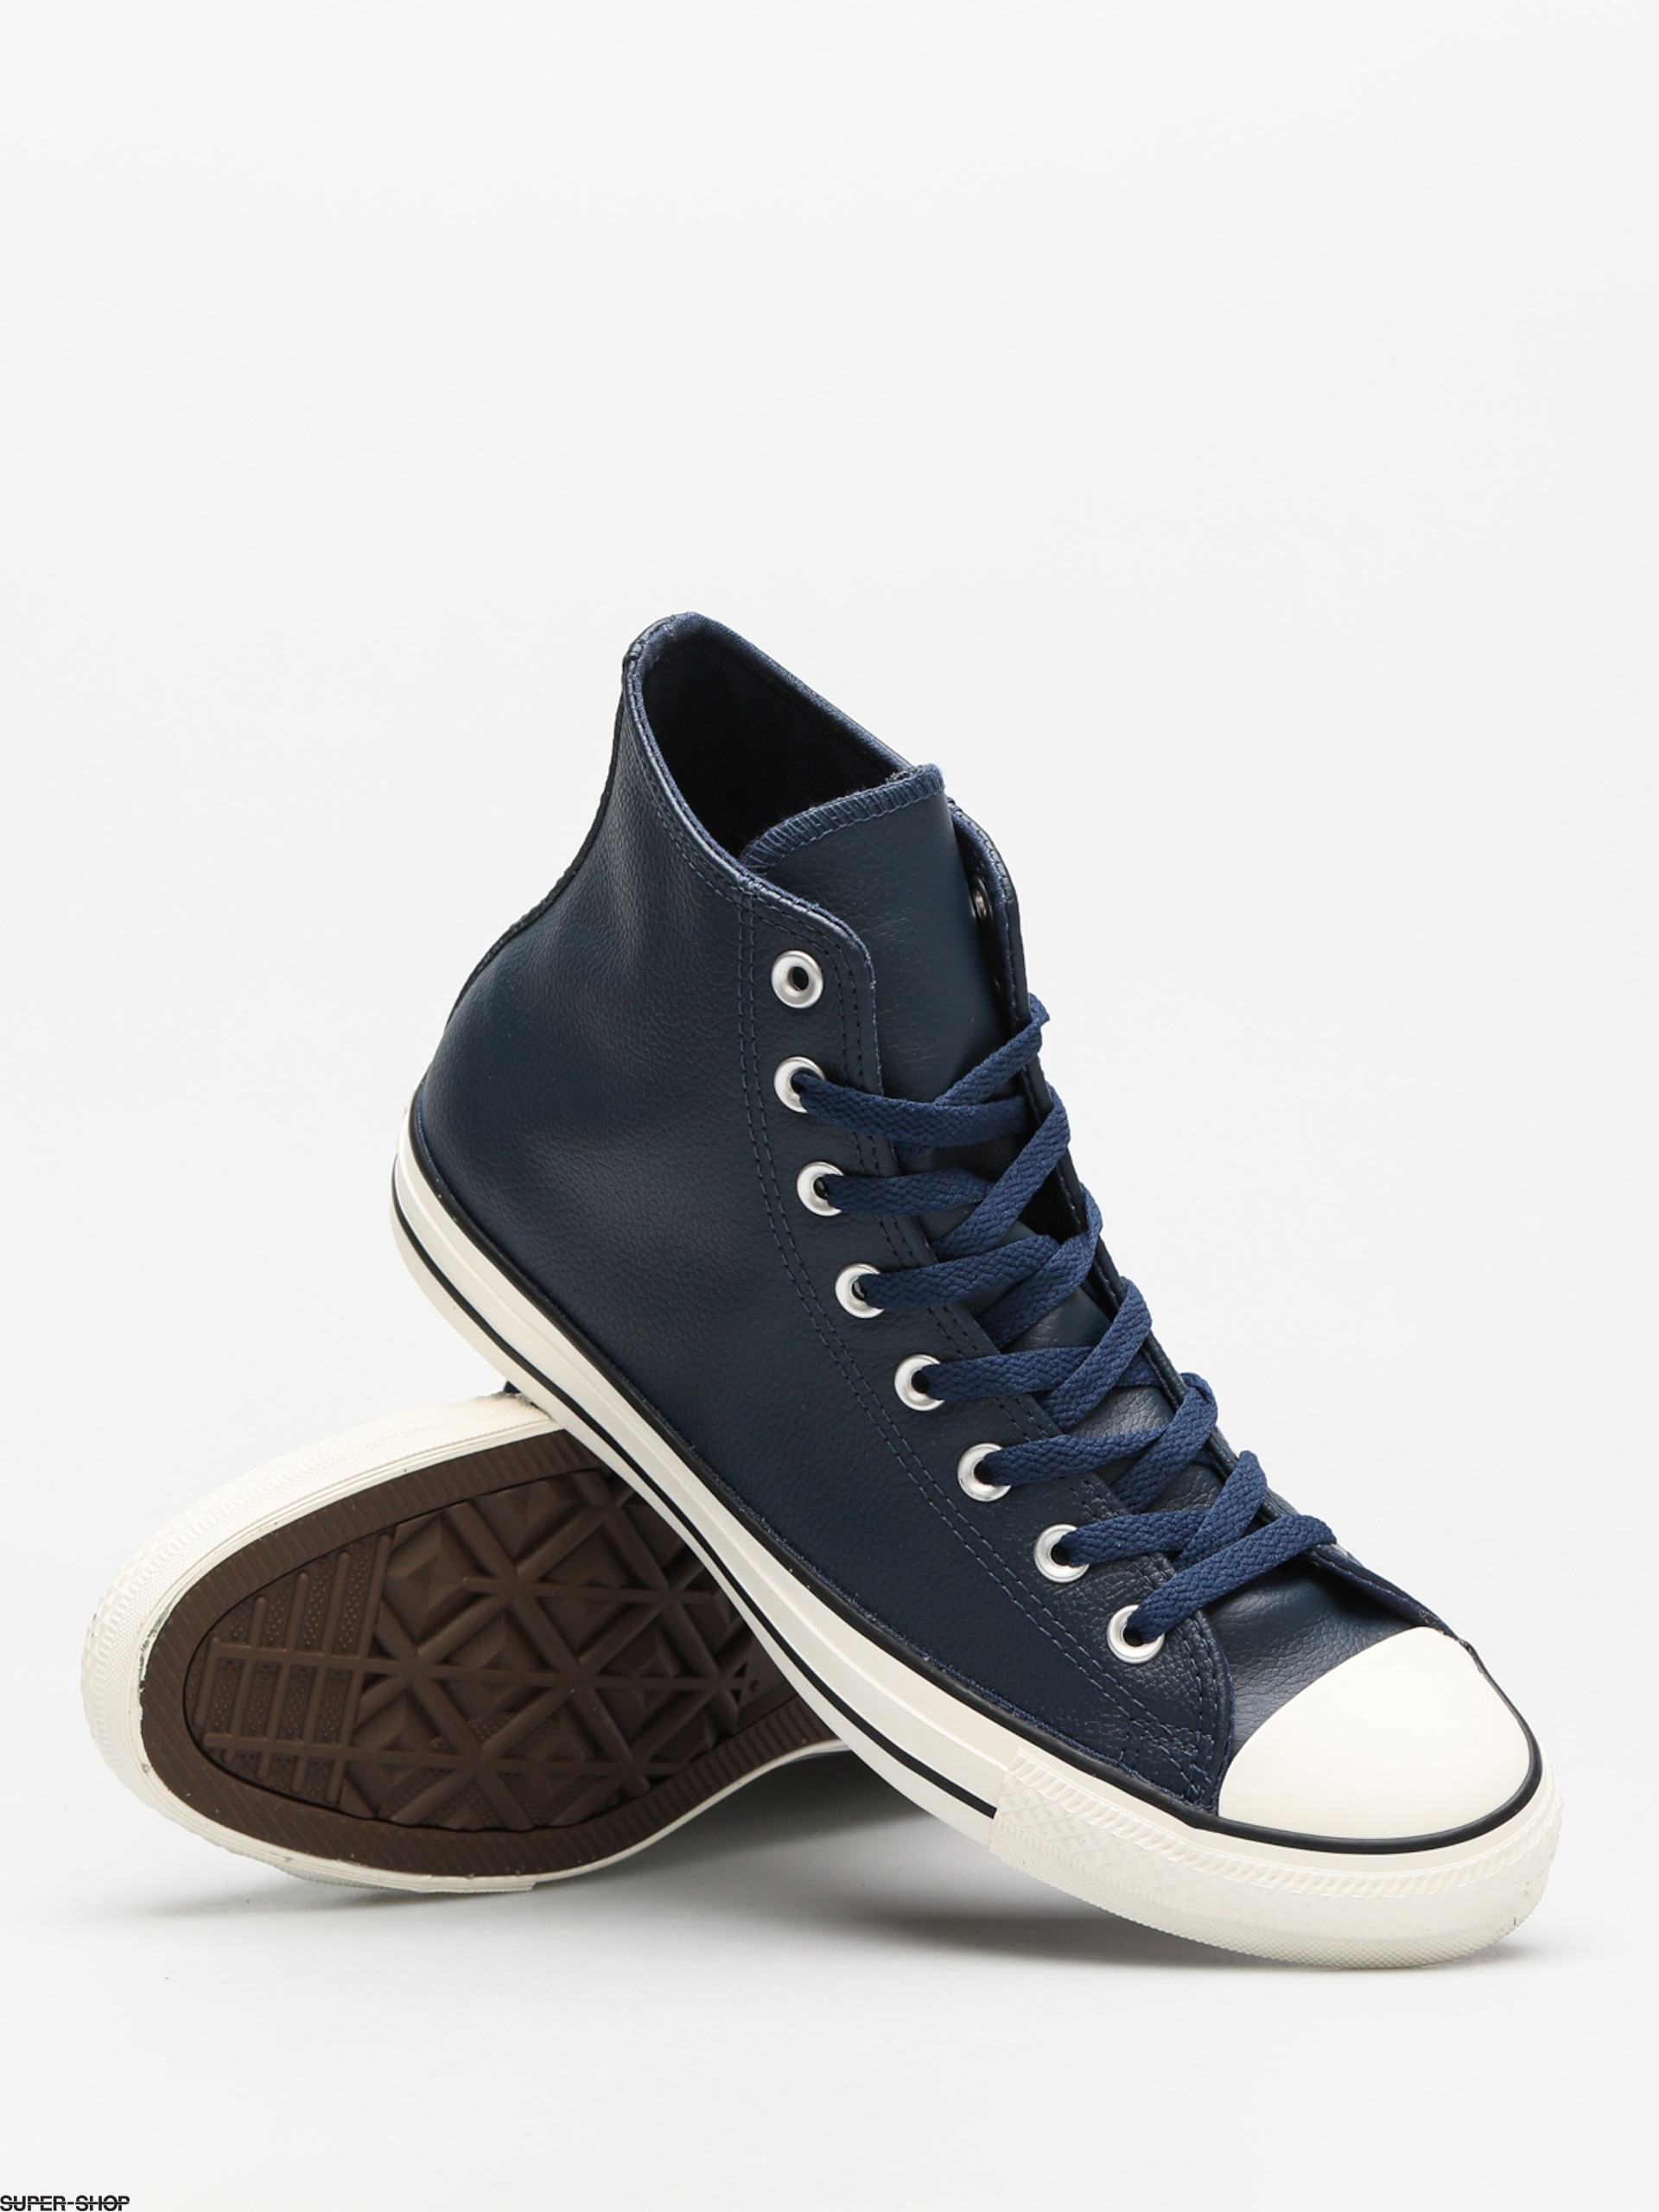 converse chuck taylor all star high top navy Shop Clothing & Shoes ...